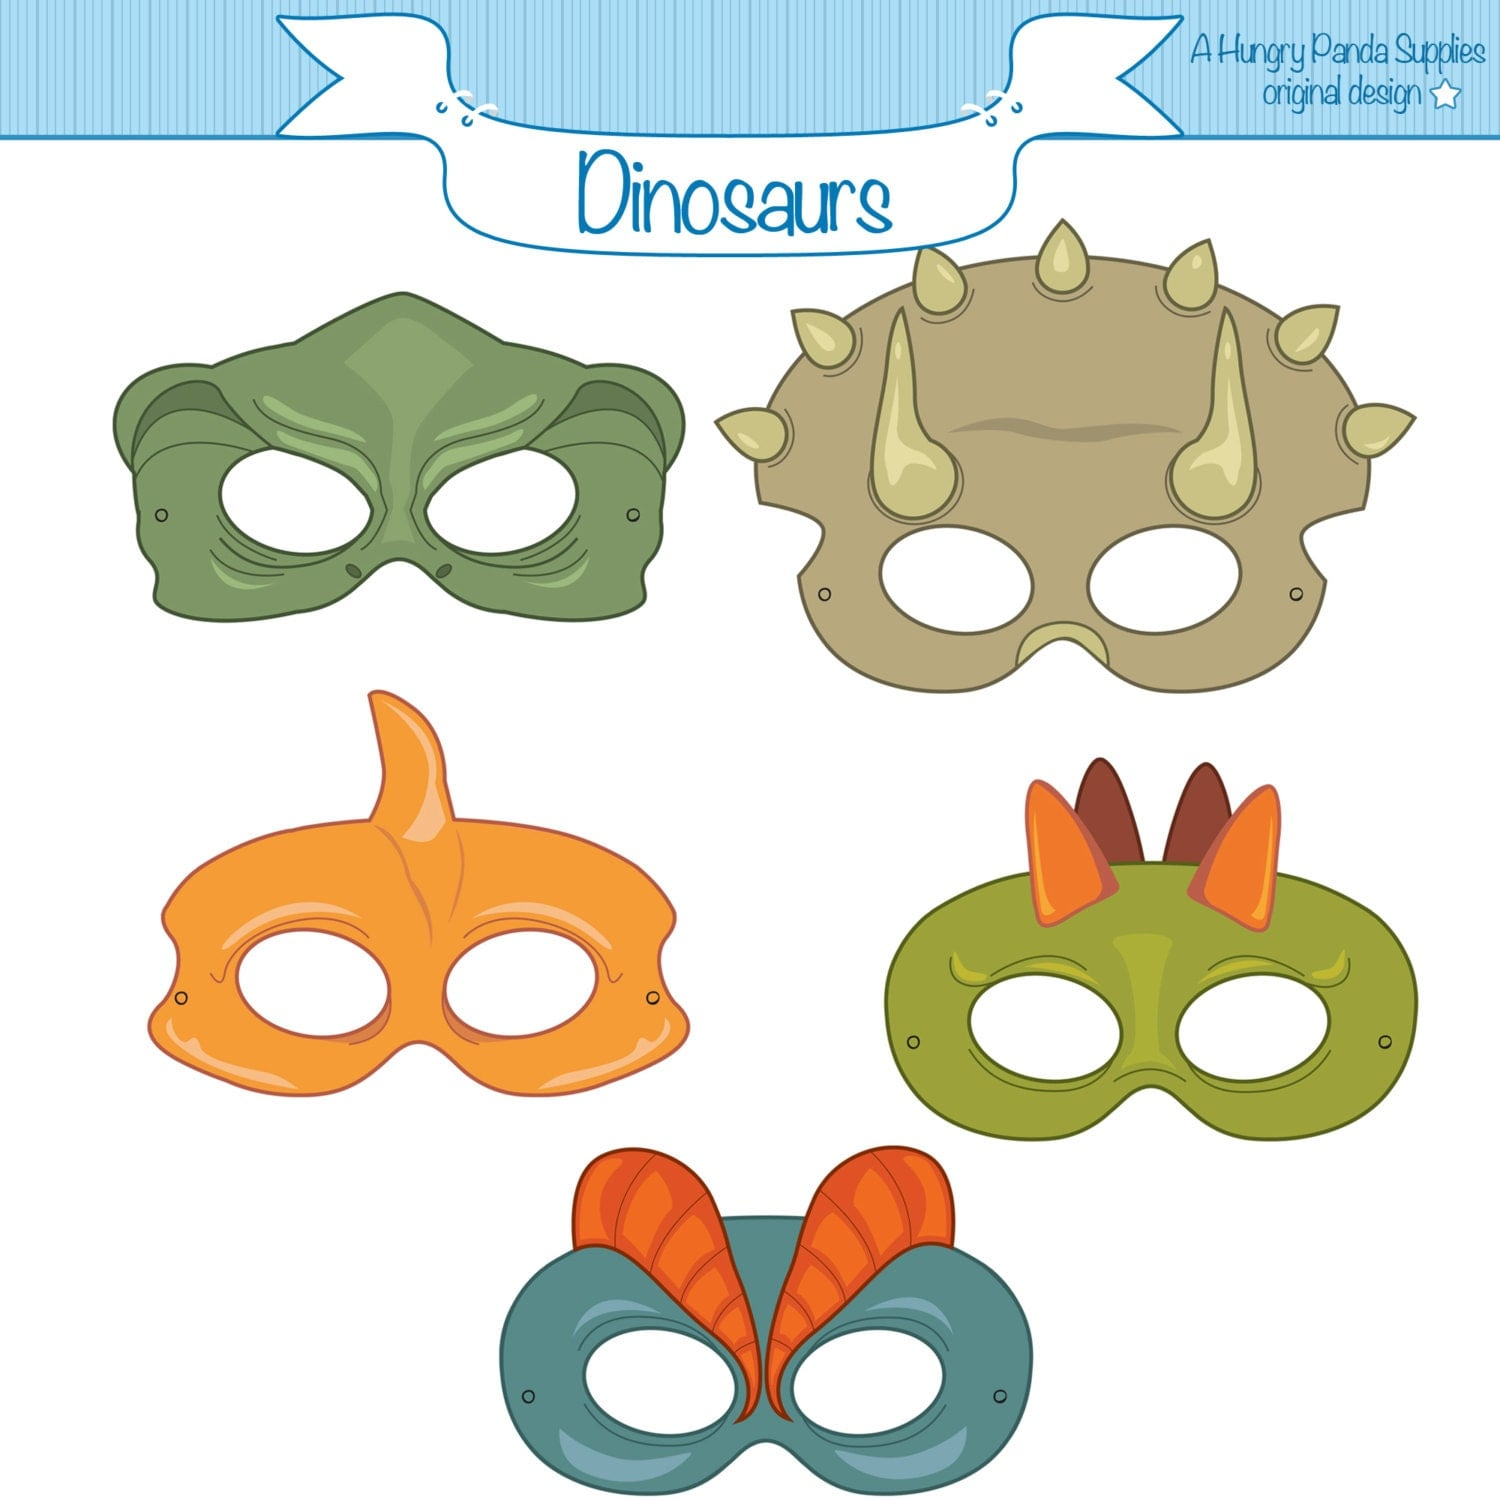 Adaptable image intended for printable dinosaur masks